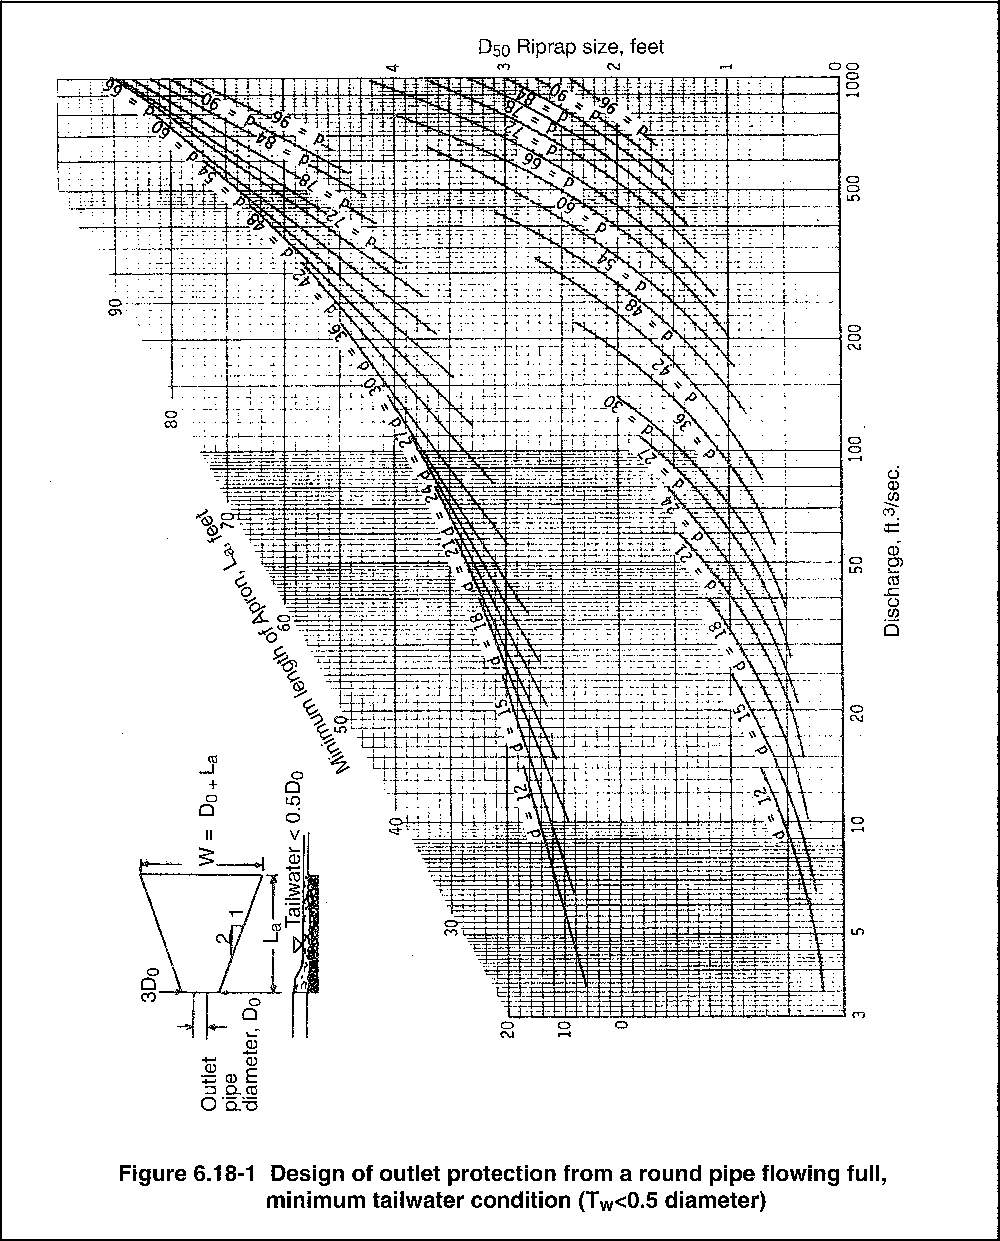 Riprap Sizing Spreadsheet In Sediment Control Practices  Outlet Energy Dissipation  Minnesota Riprap Sizing Spreadsheet Printable Spreadshee Printable Spreadshee riprap sizing spreadsheet